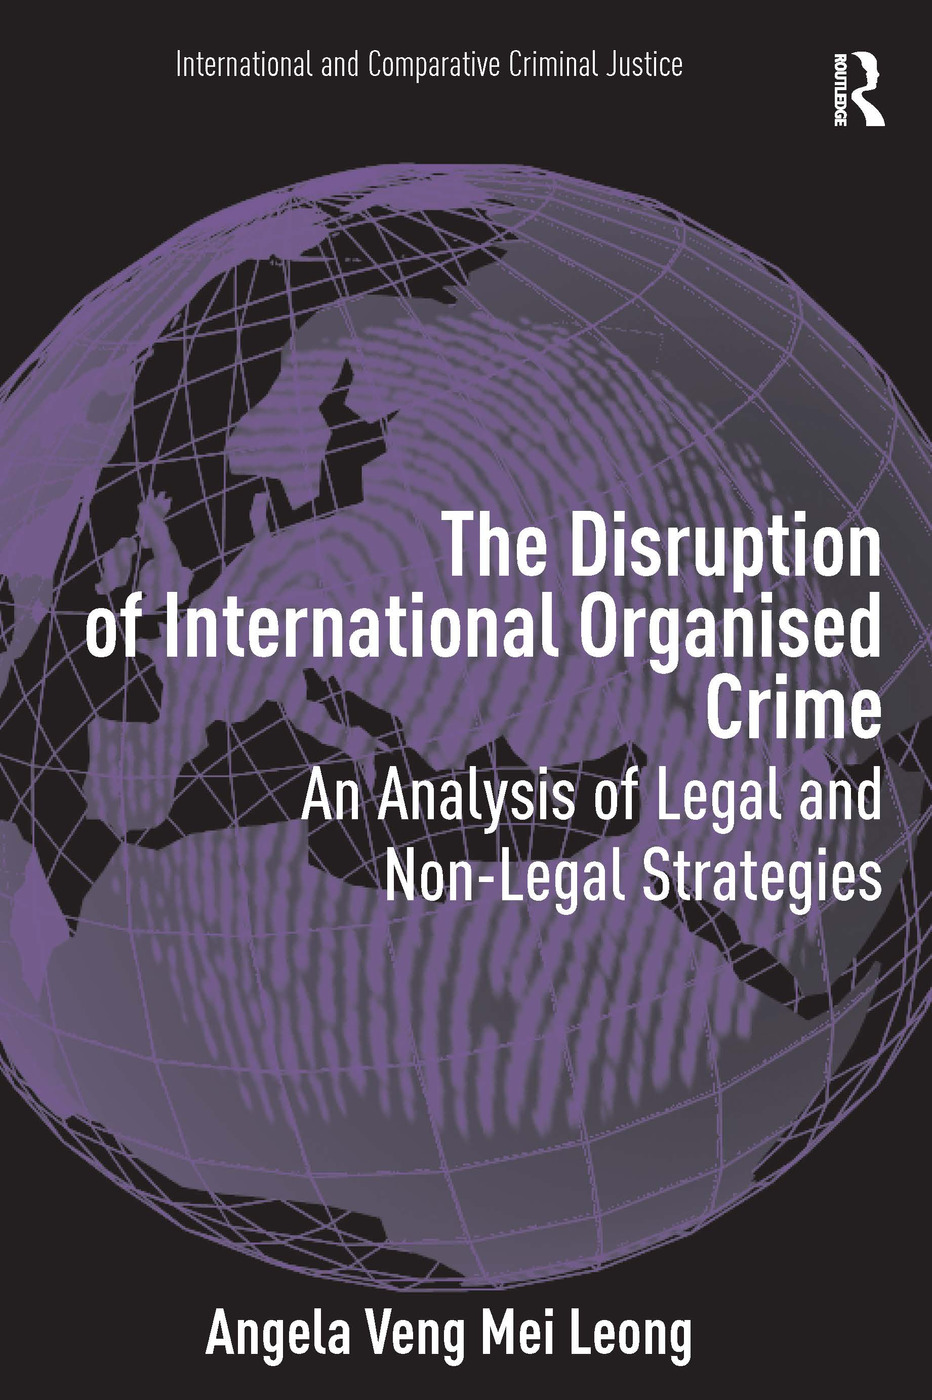 The Disruption of International Organised Crime: An Analysis of Legal and Non-Legal Strategies book cover